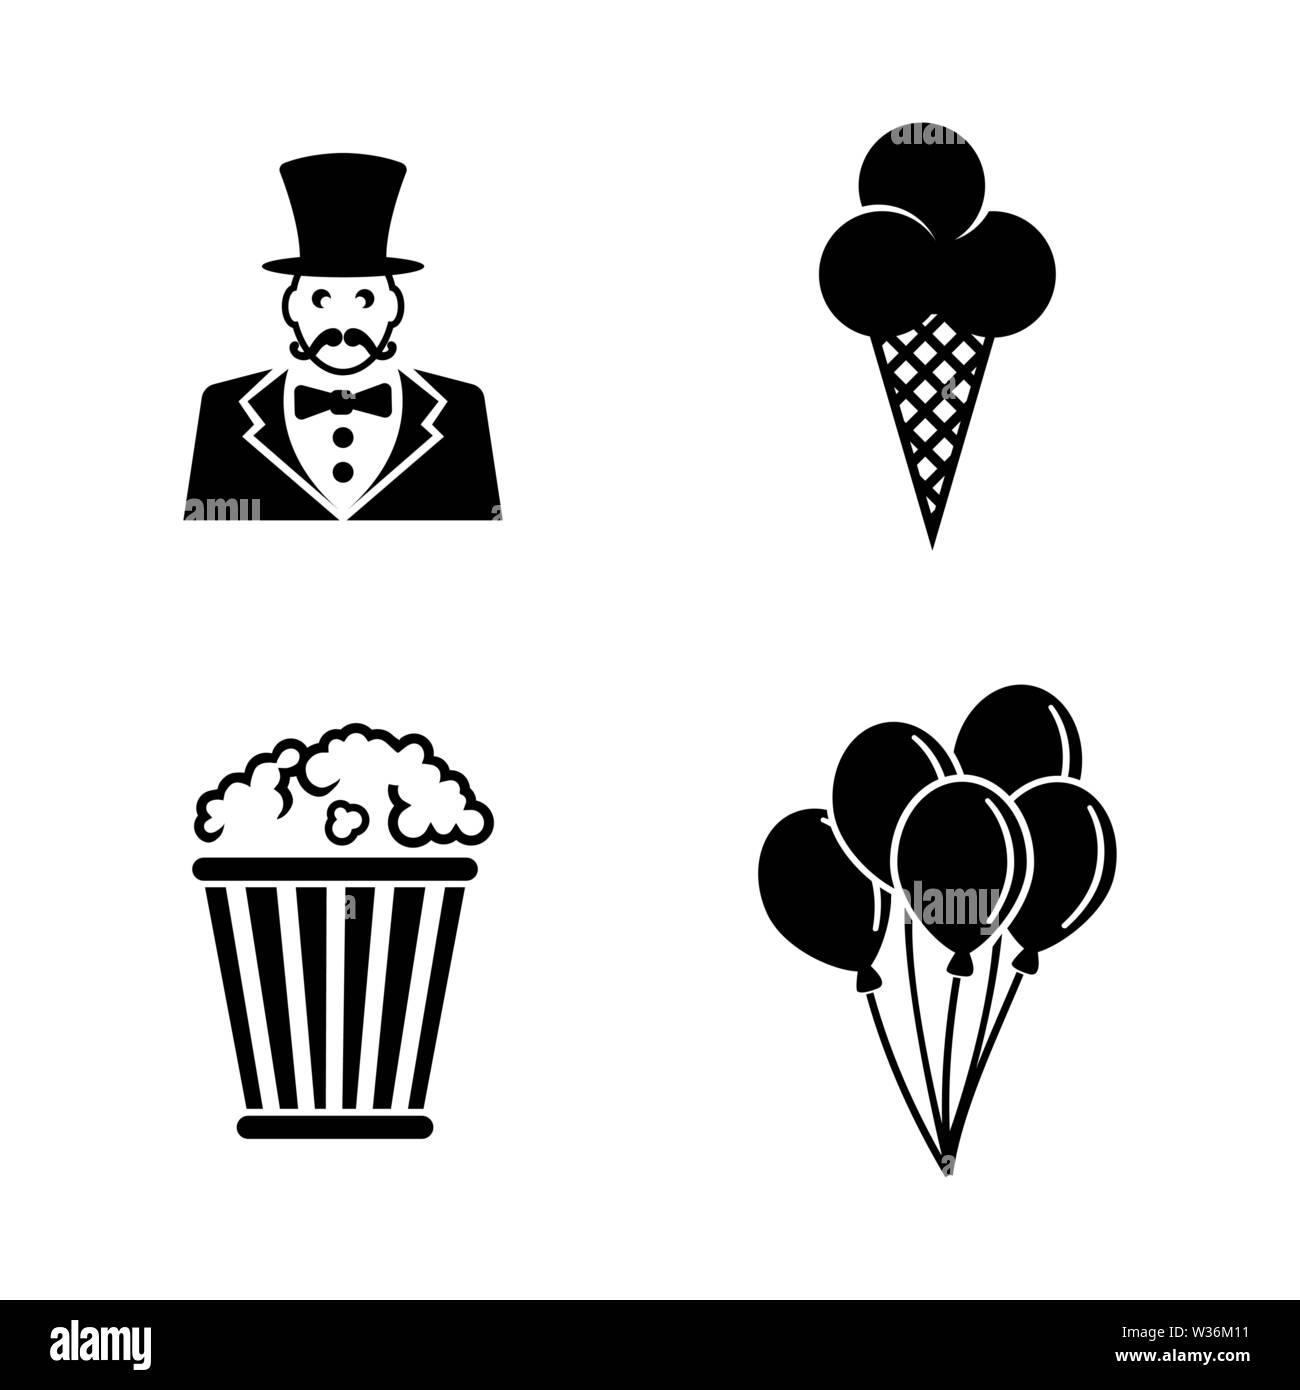 Circus Carnival Amusement Park. Simple Related Vector Icons Set for Video, Mobile Apps, Web Sites, Print Projects and Your Design. Black Flat Illustra - Stock Image